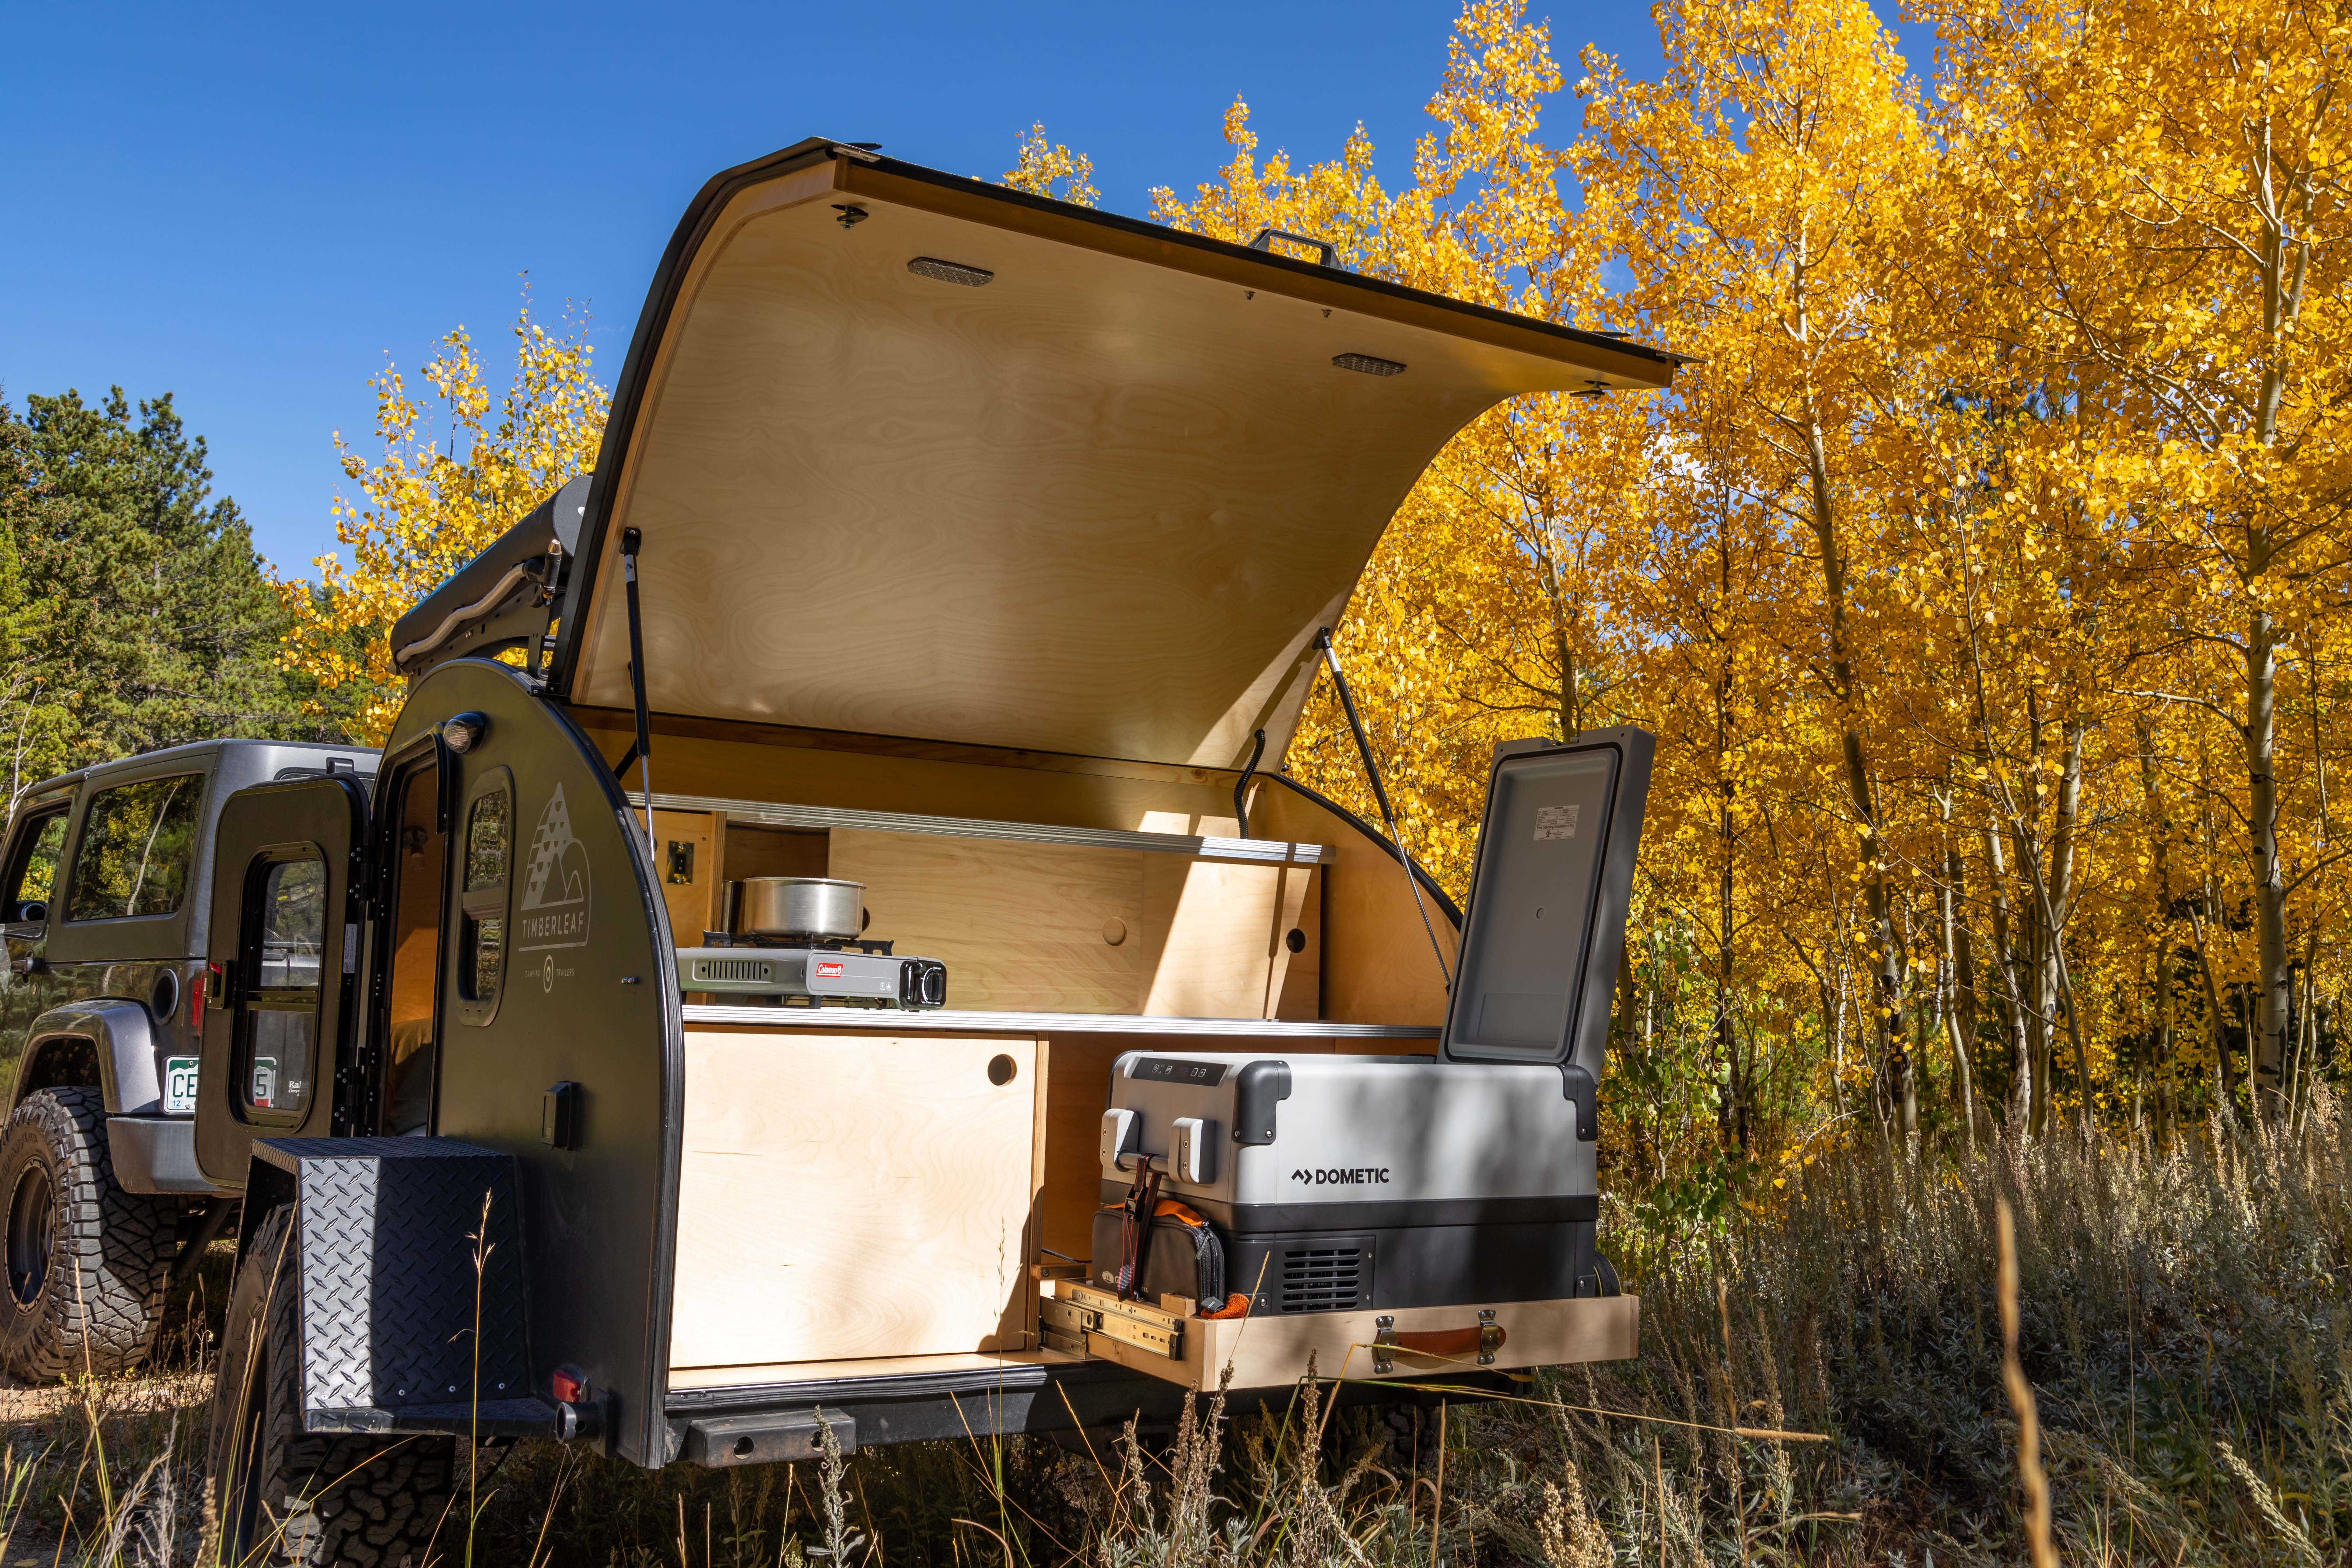 A gas stove, plenty of pantry space, and a fridge/freezer for all your cooking storage and needs. . Timberleaf Pika 2019